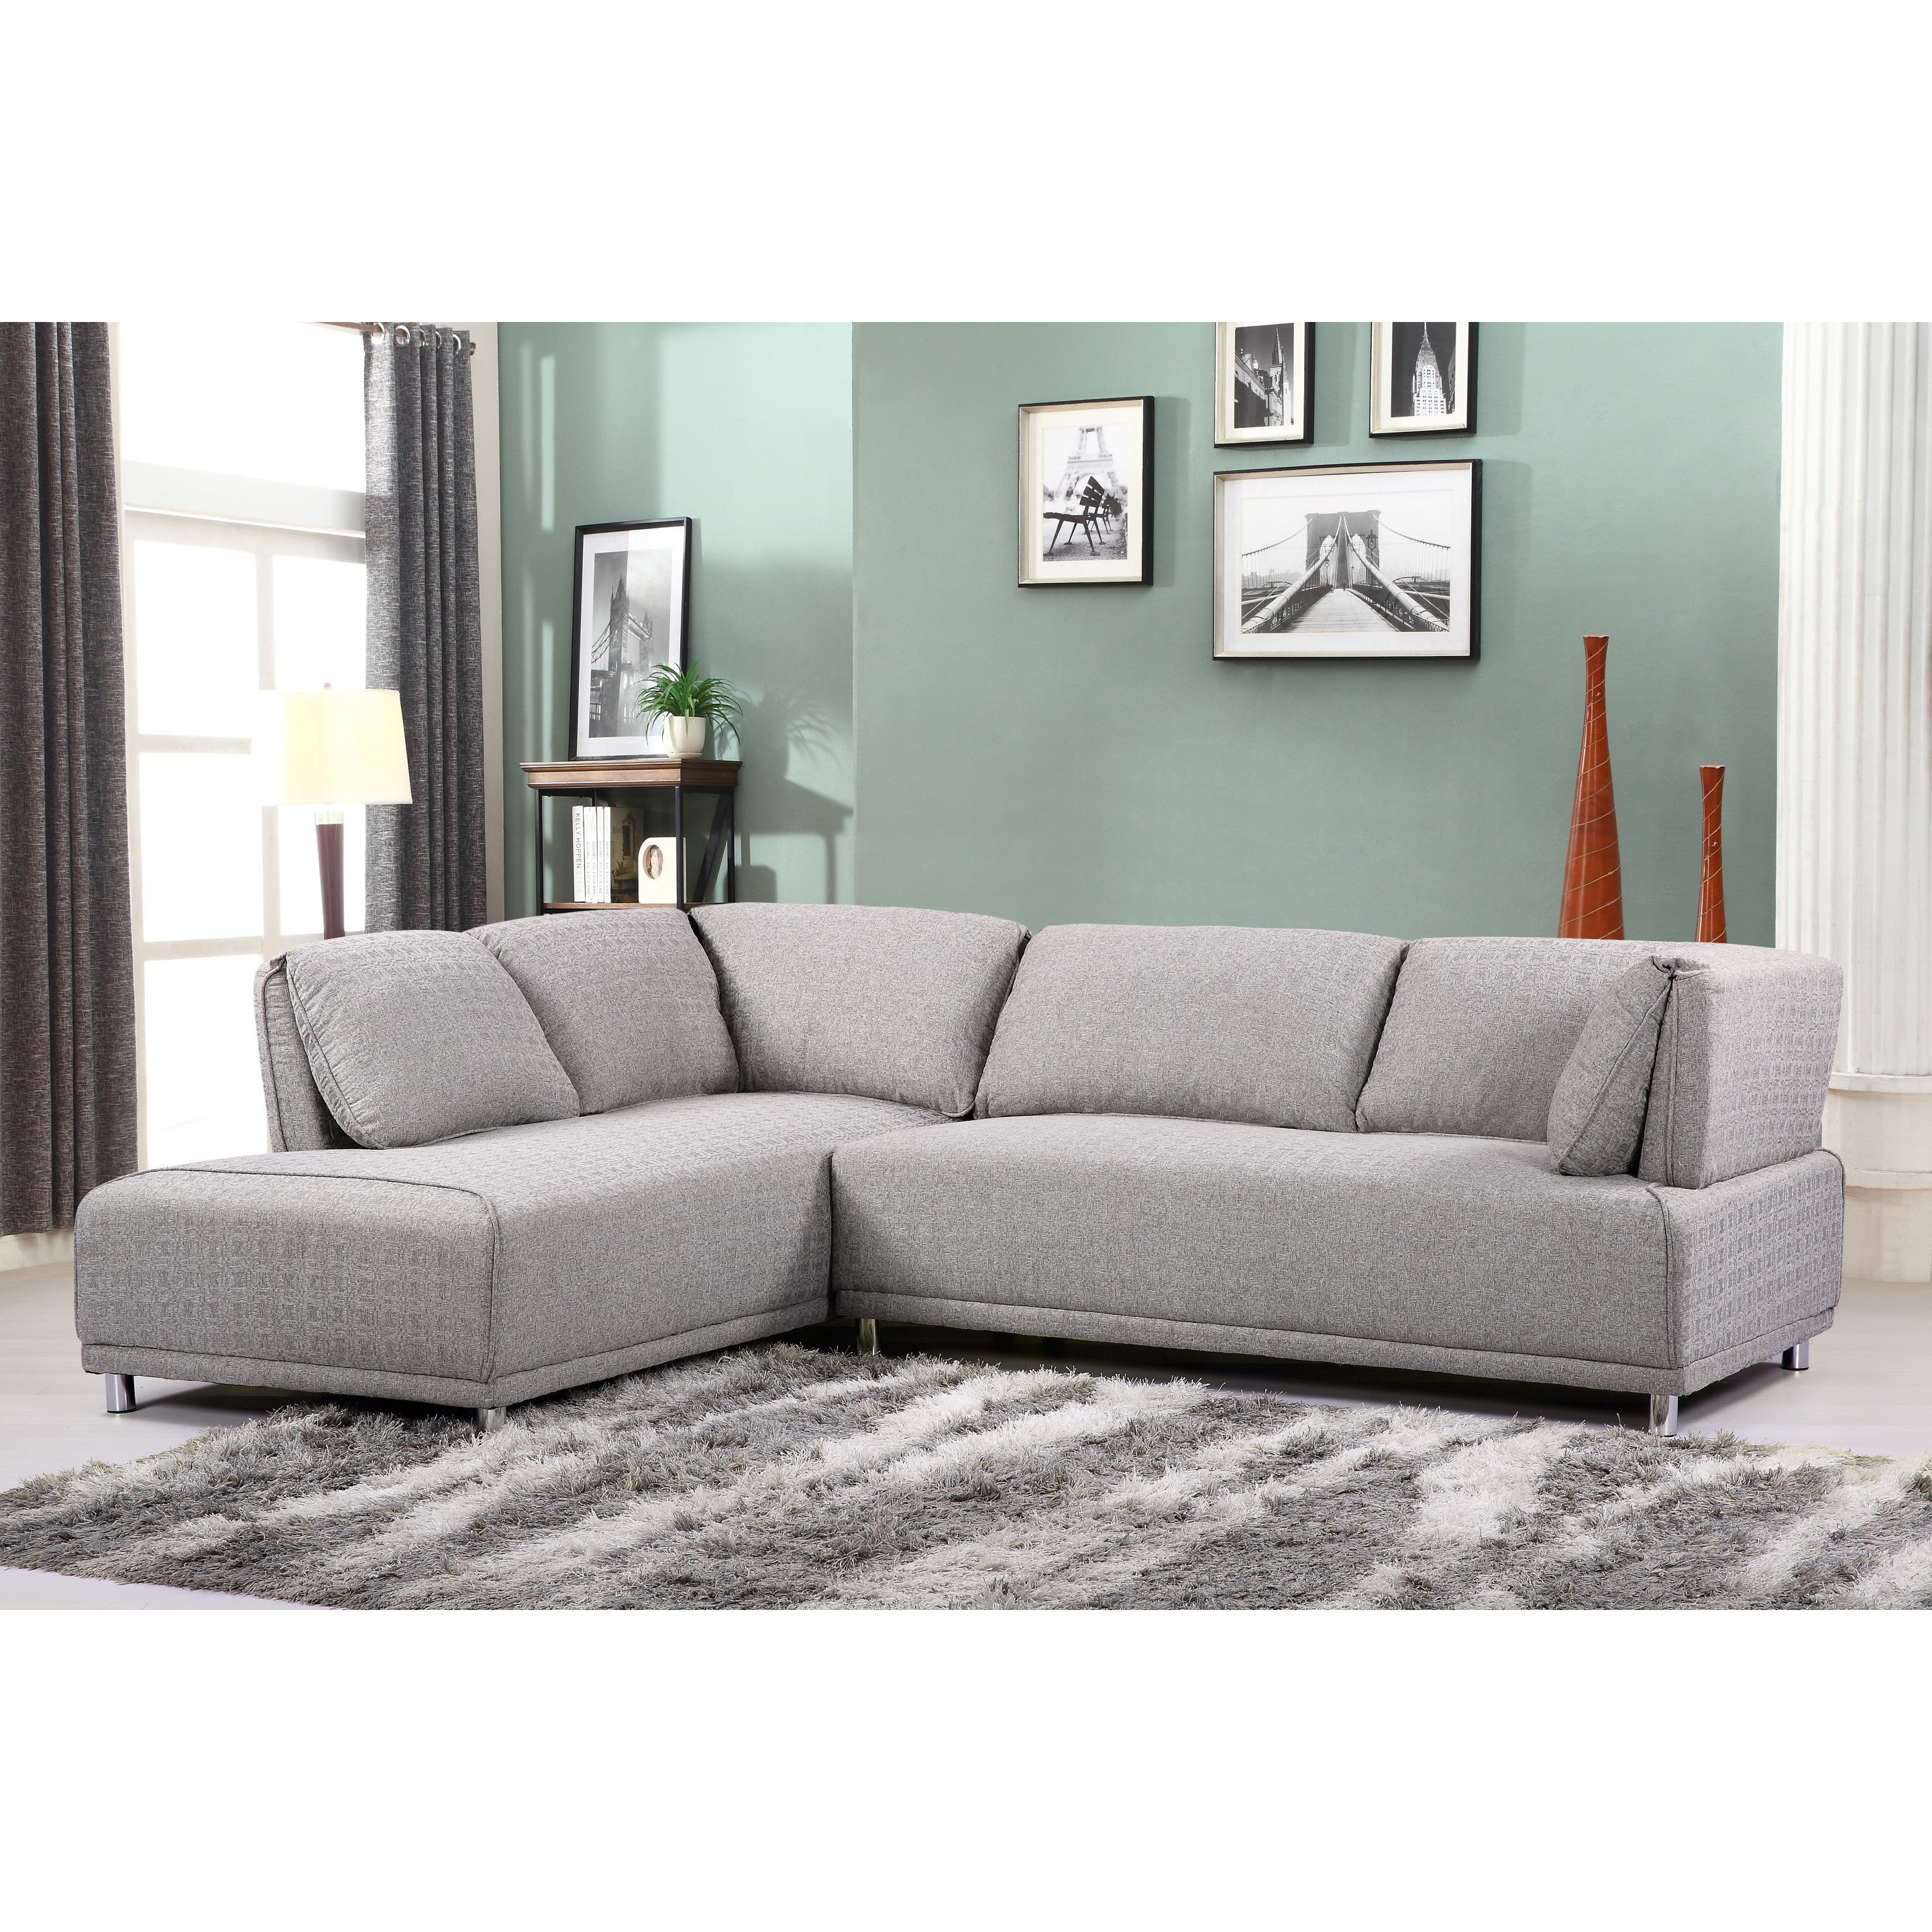 small media sectional west elm urban grey canada piece chaise